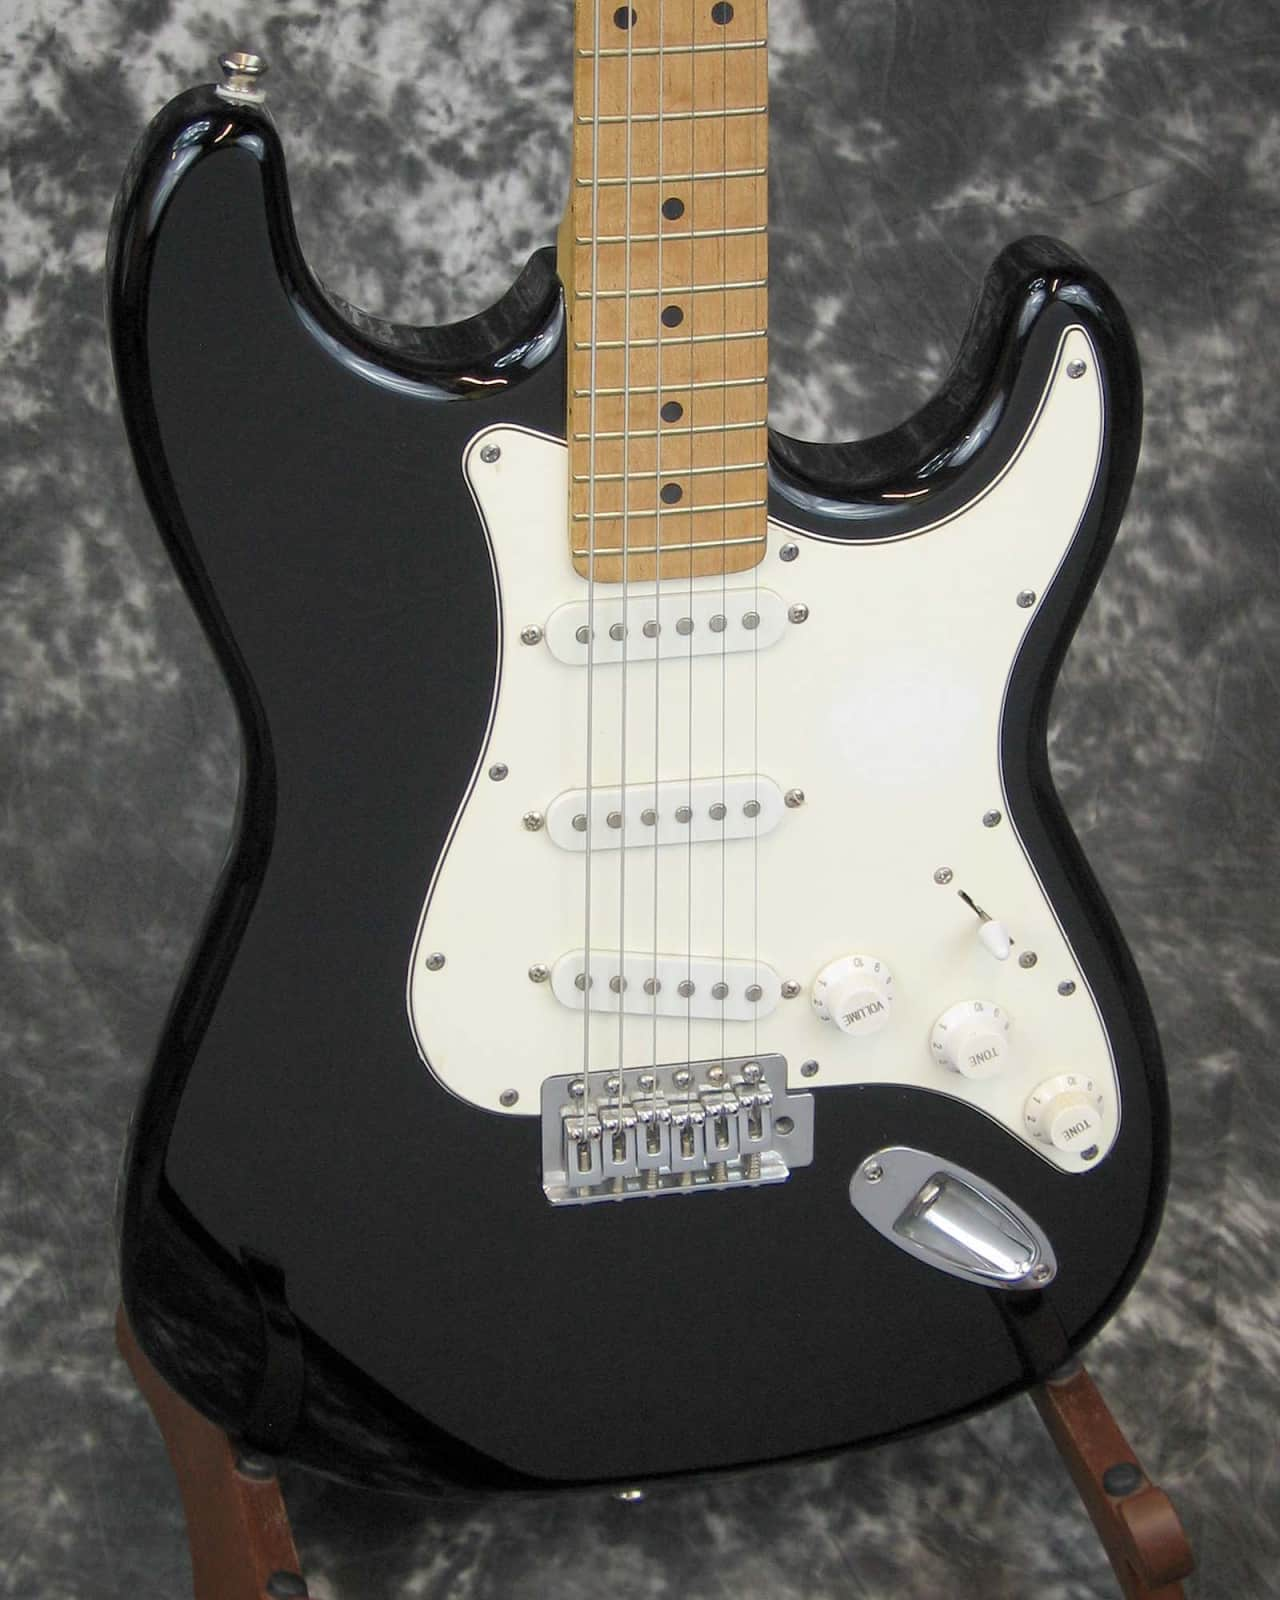 vg used indiana double cutaway electric guitar reverb. Black Bedroom Furniture Sets. Home Design Ideas